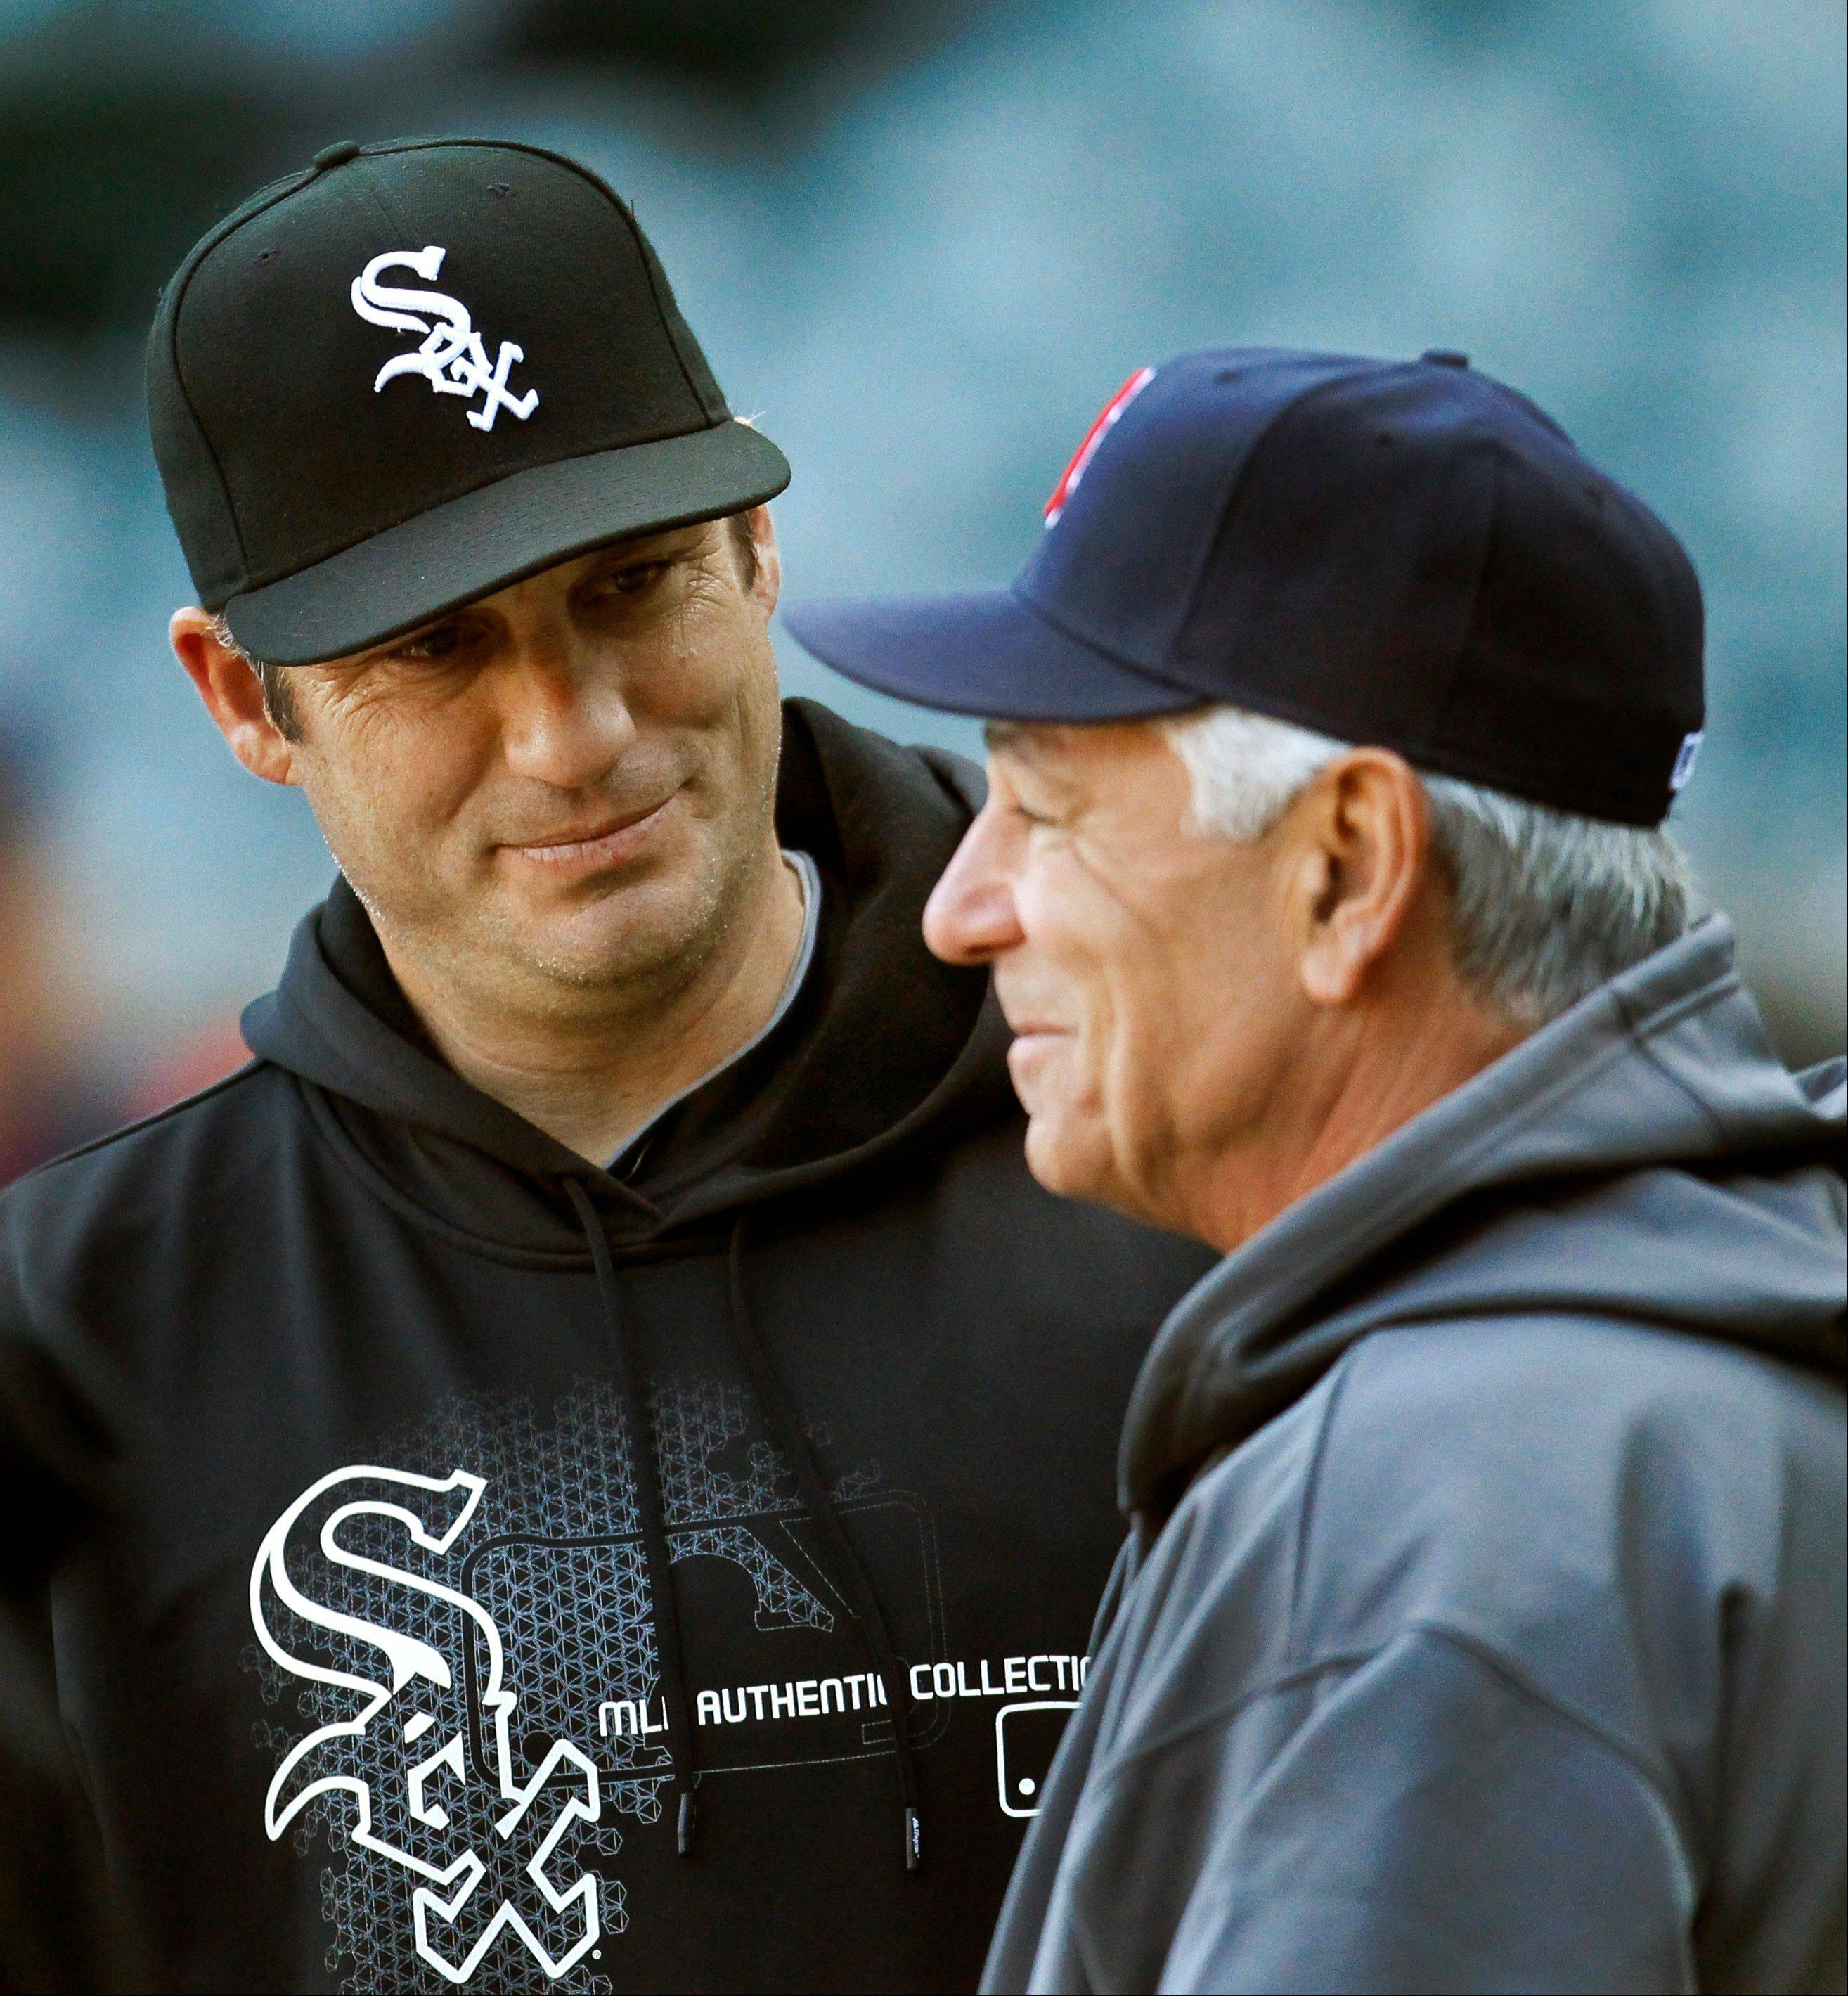 Matt Spiegel has a few concerns about all the calls for bunts that White Sox manager Robin Ventura called this past week. Ventura and Boston manager Bobby Valentine finish up their four-game series Sunday at U.S. Cellular Field.